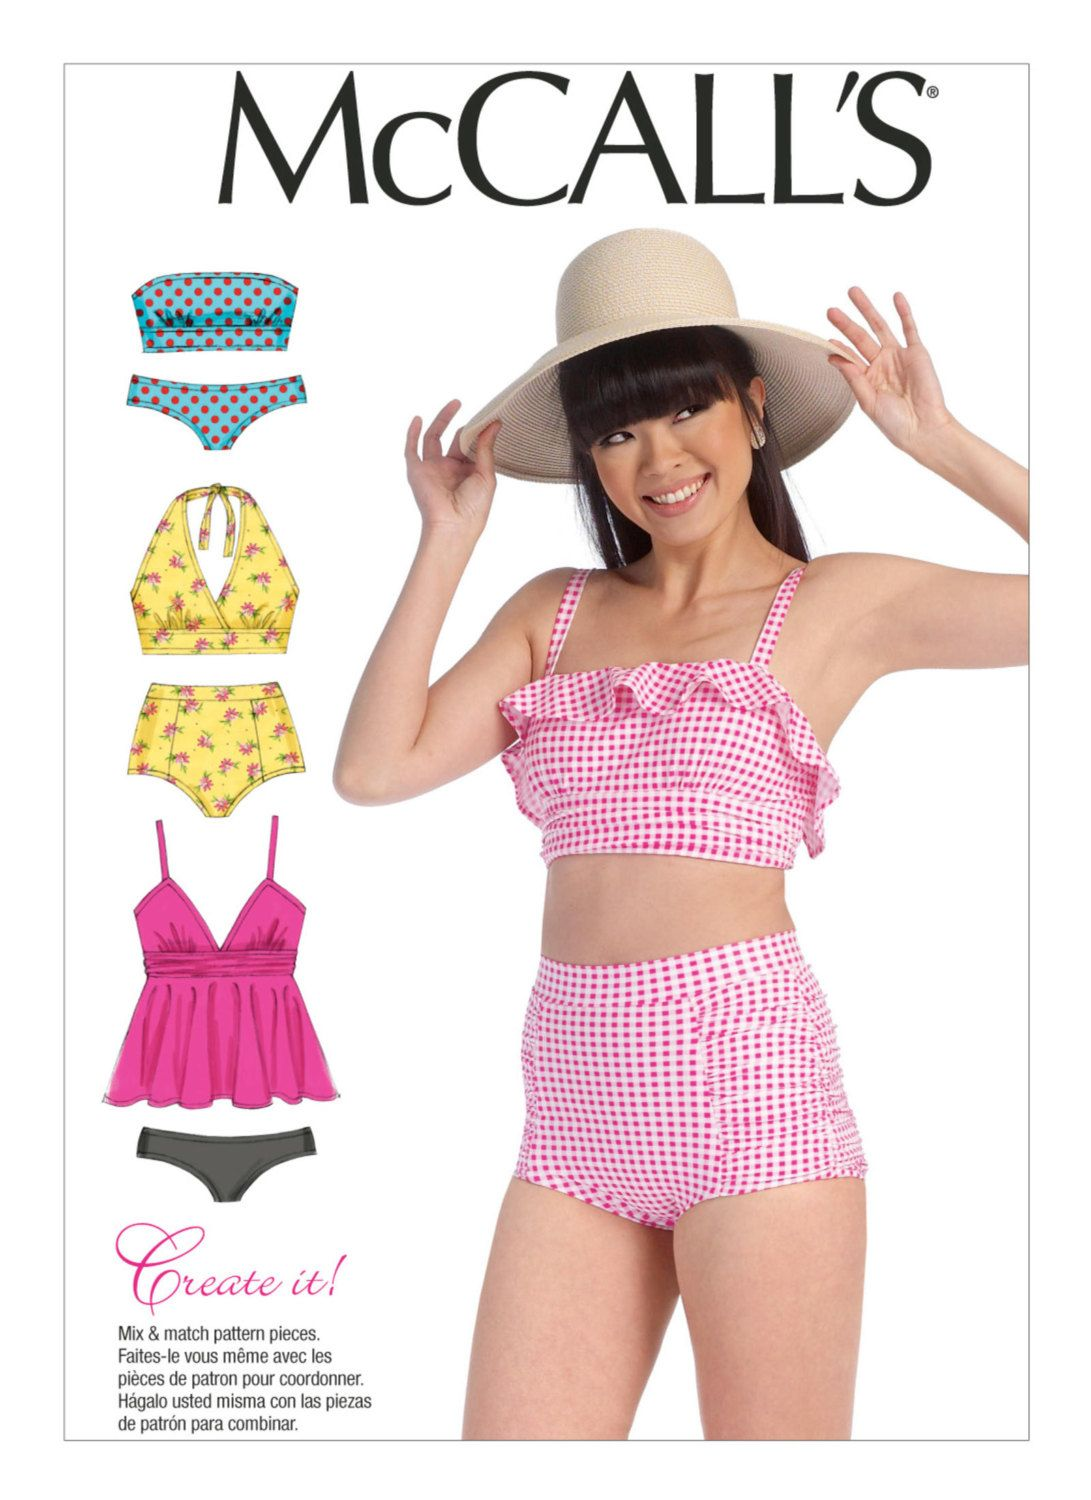 Mccalls m7168 misses bikinis misses vintage style bikinis two mccalls misses bikinis misses vintage style bikinis two piece swimsuits sewing pattern by drcrosepatterns on etsy jeuxipadfo Gallery